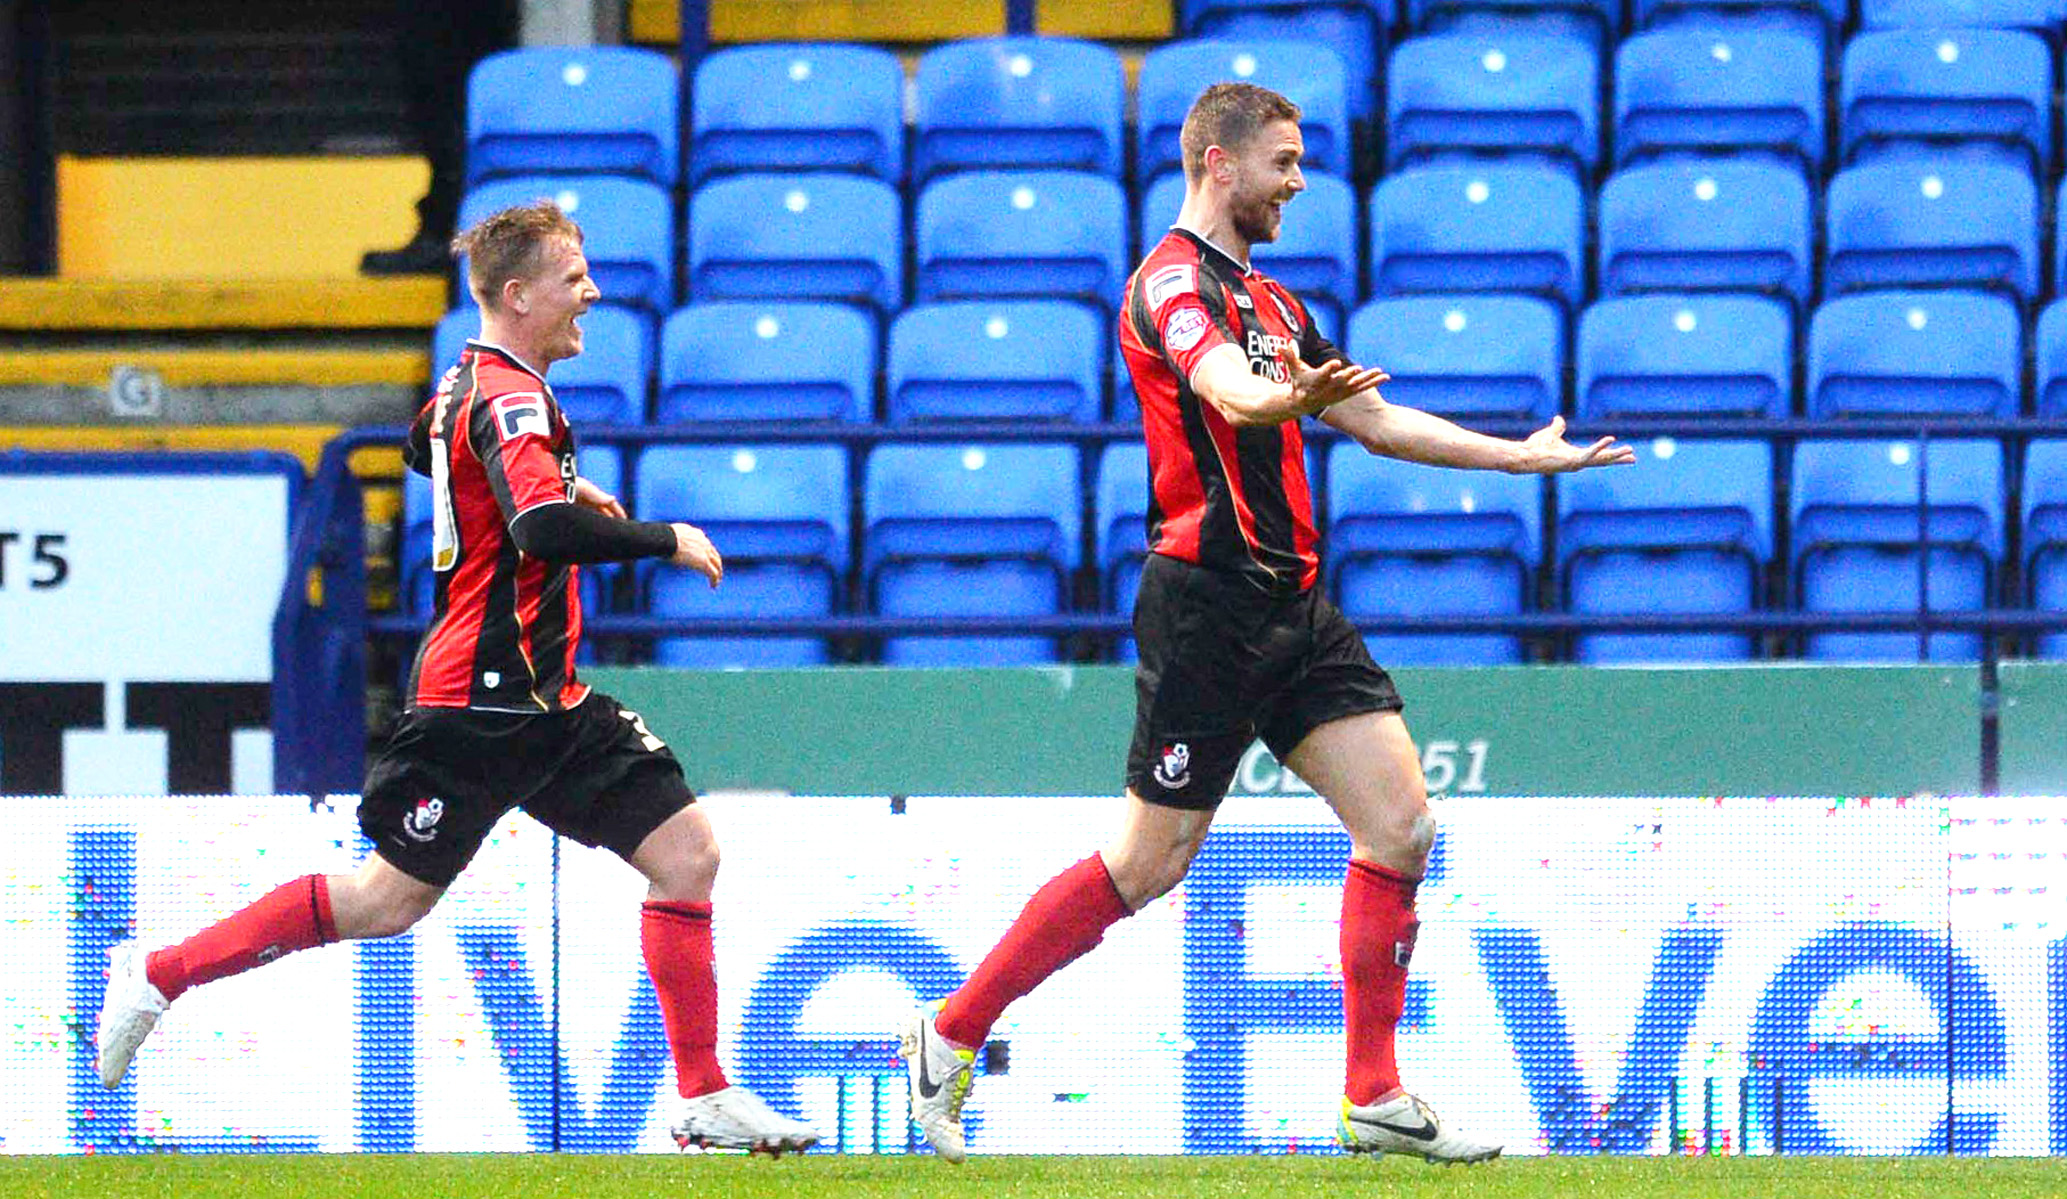 ASSISTS: Cherries' Simon Francis